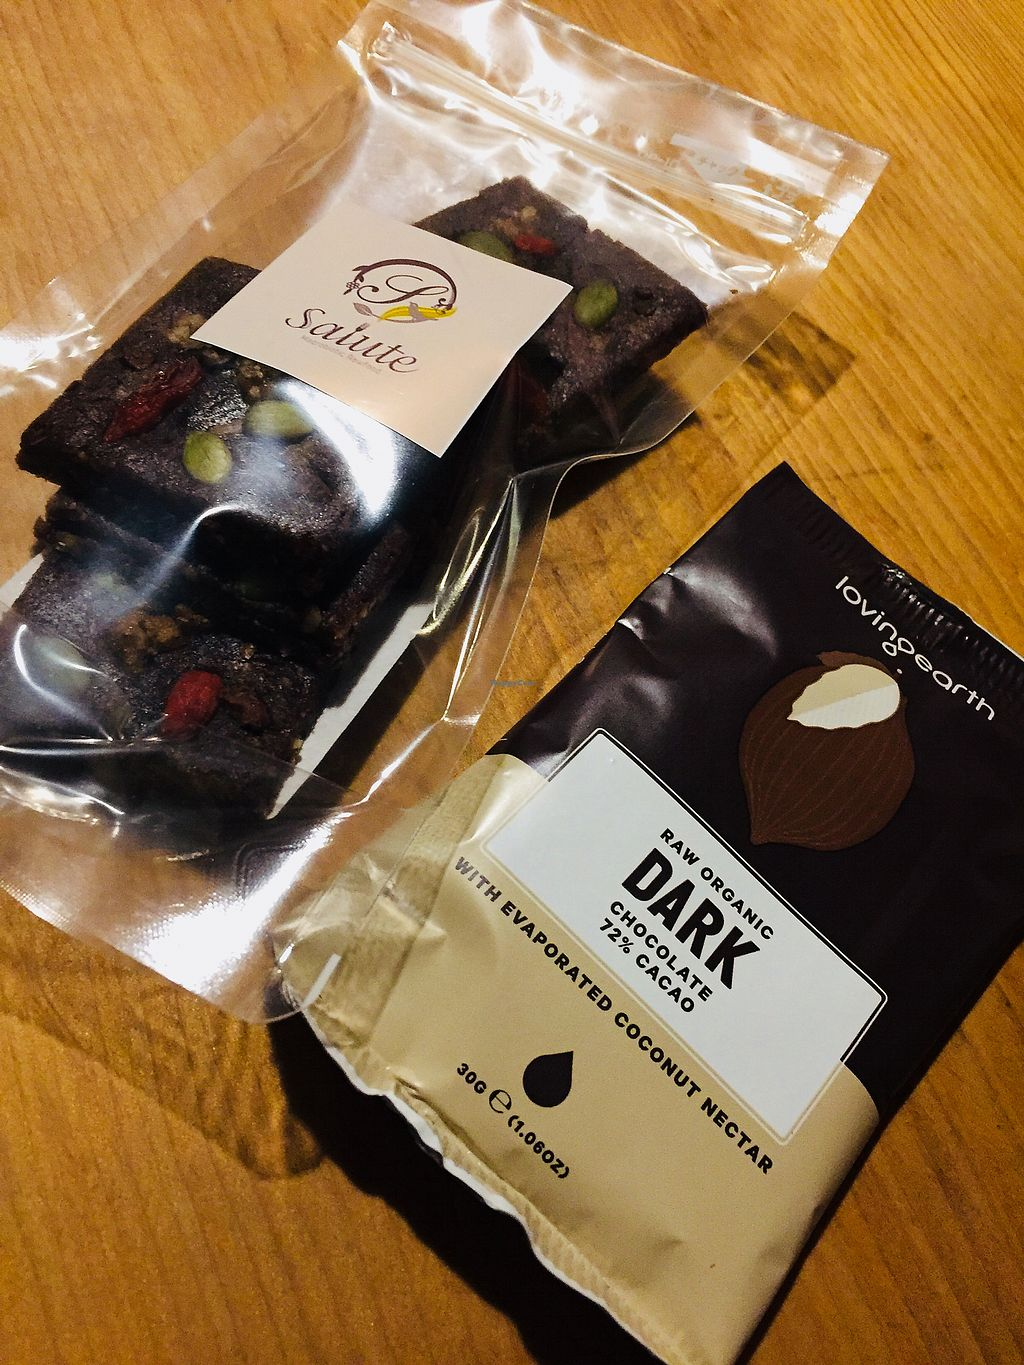 """Photo of Organic House Salute  by <a href=""""/members/profile/V87"""">V87</a> <br/>Chocolate to go ^.^ <br/> April 10, 2018  - <a href='/contact/abuse/image/43818/383261'>Report</a>"""